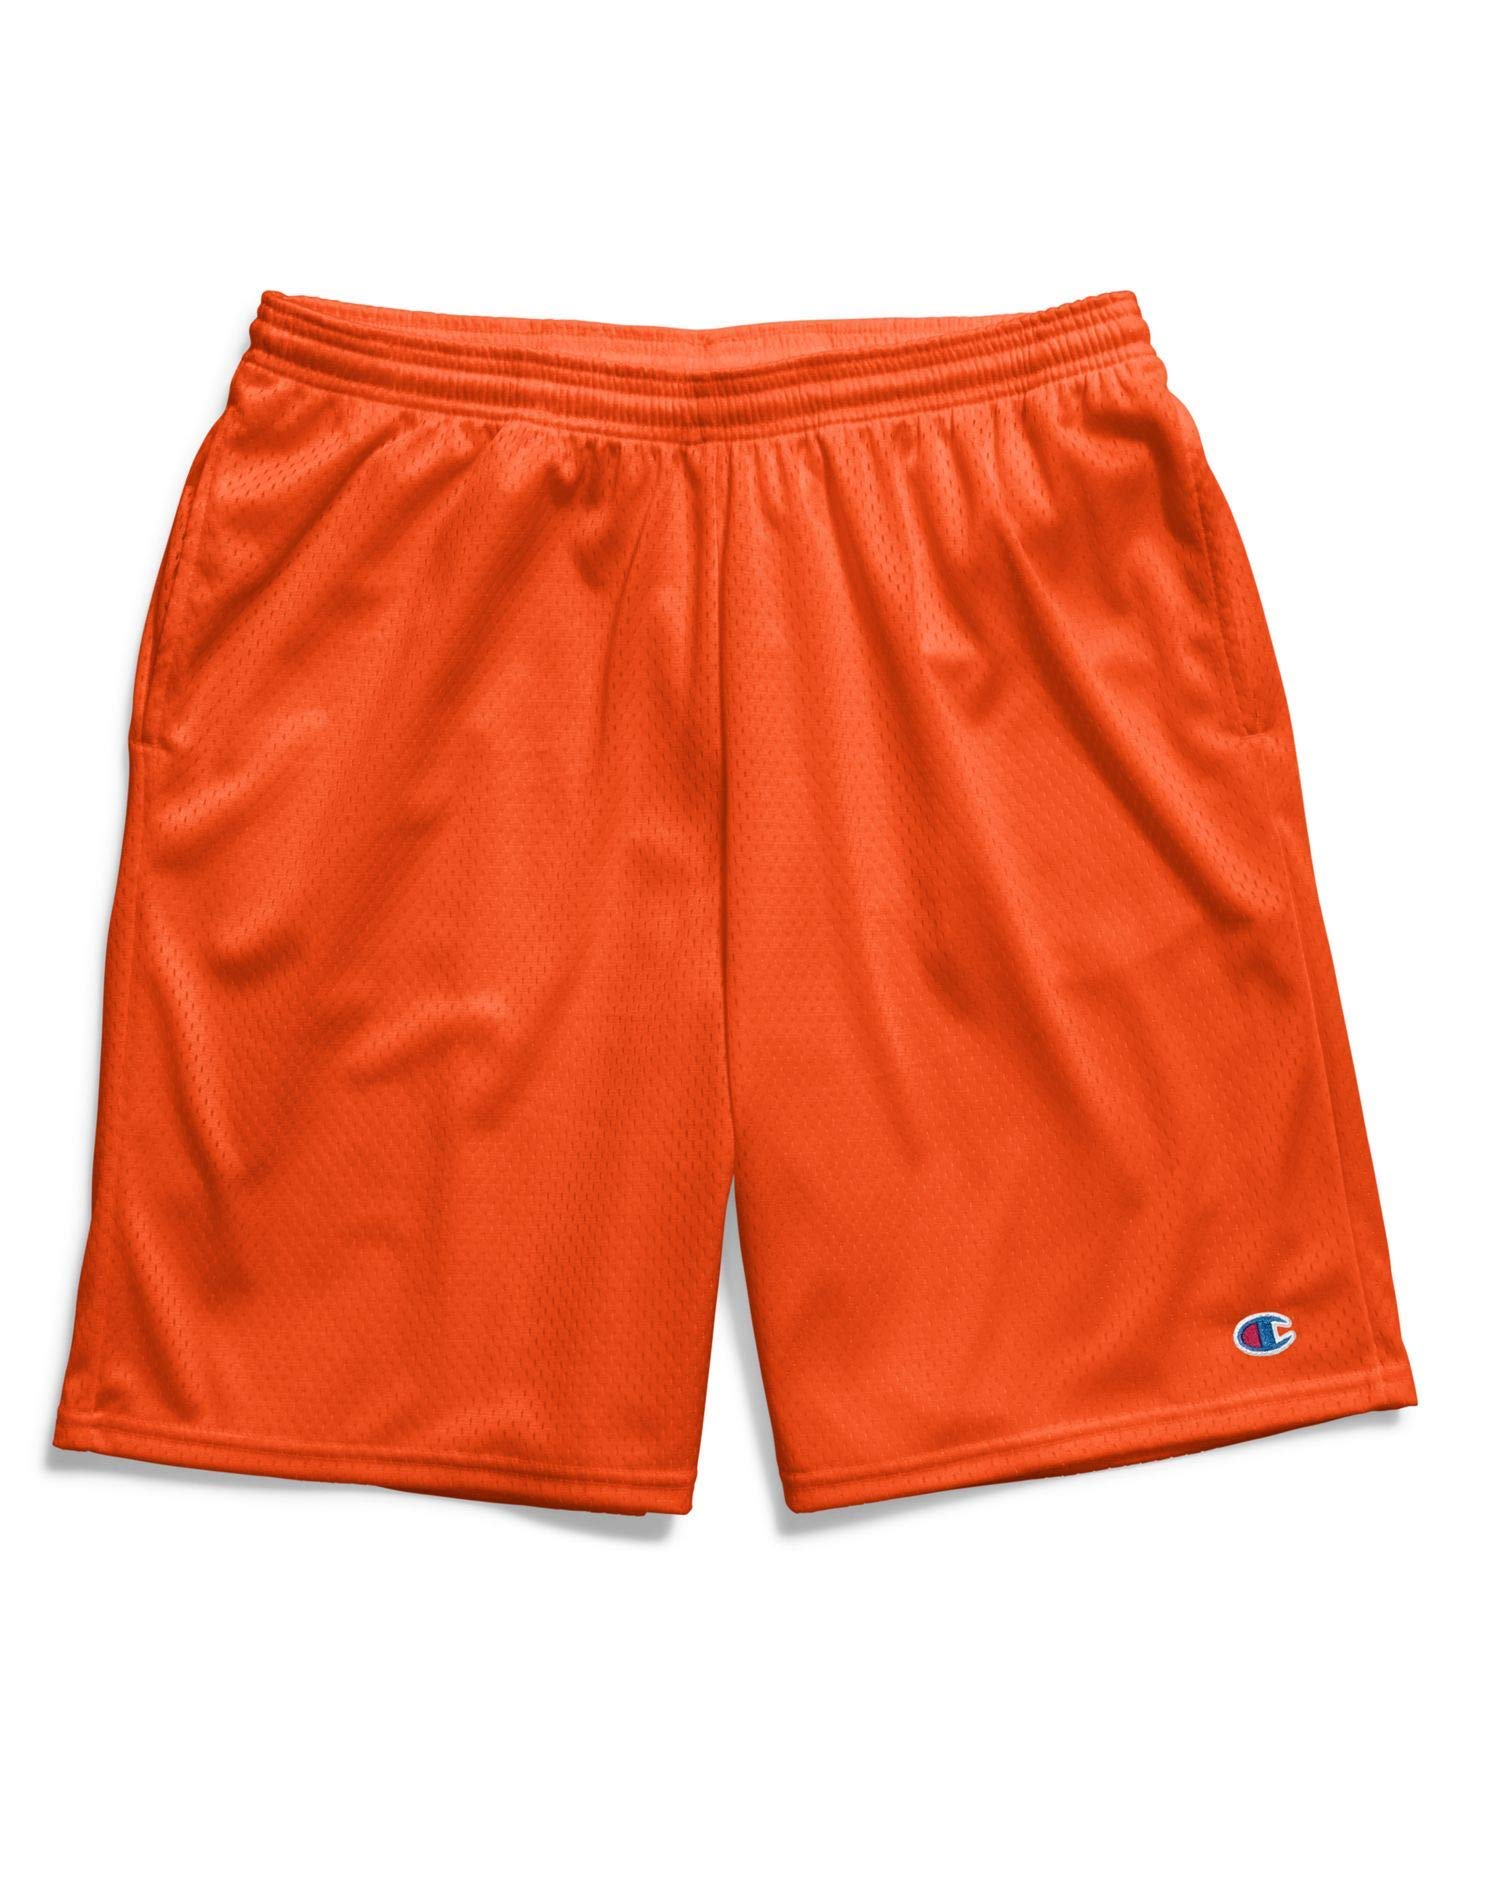 Champion Men's Long Mesh Short with Pockets, Spicy Orange 1, by Champion